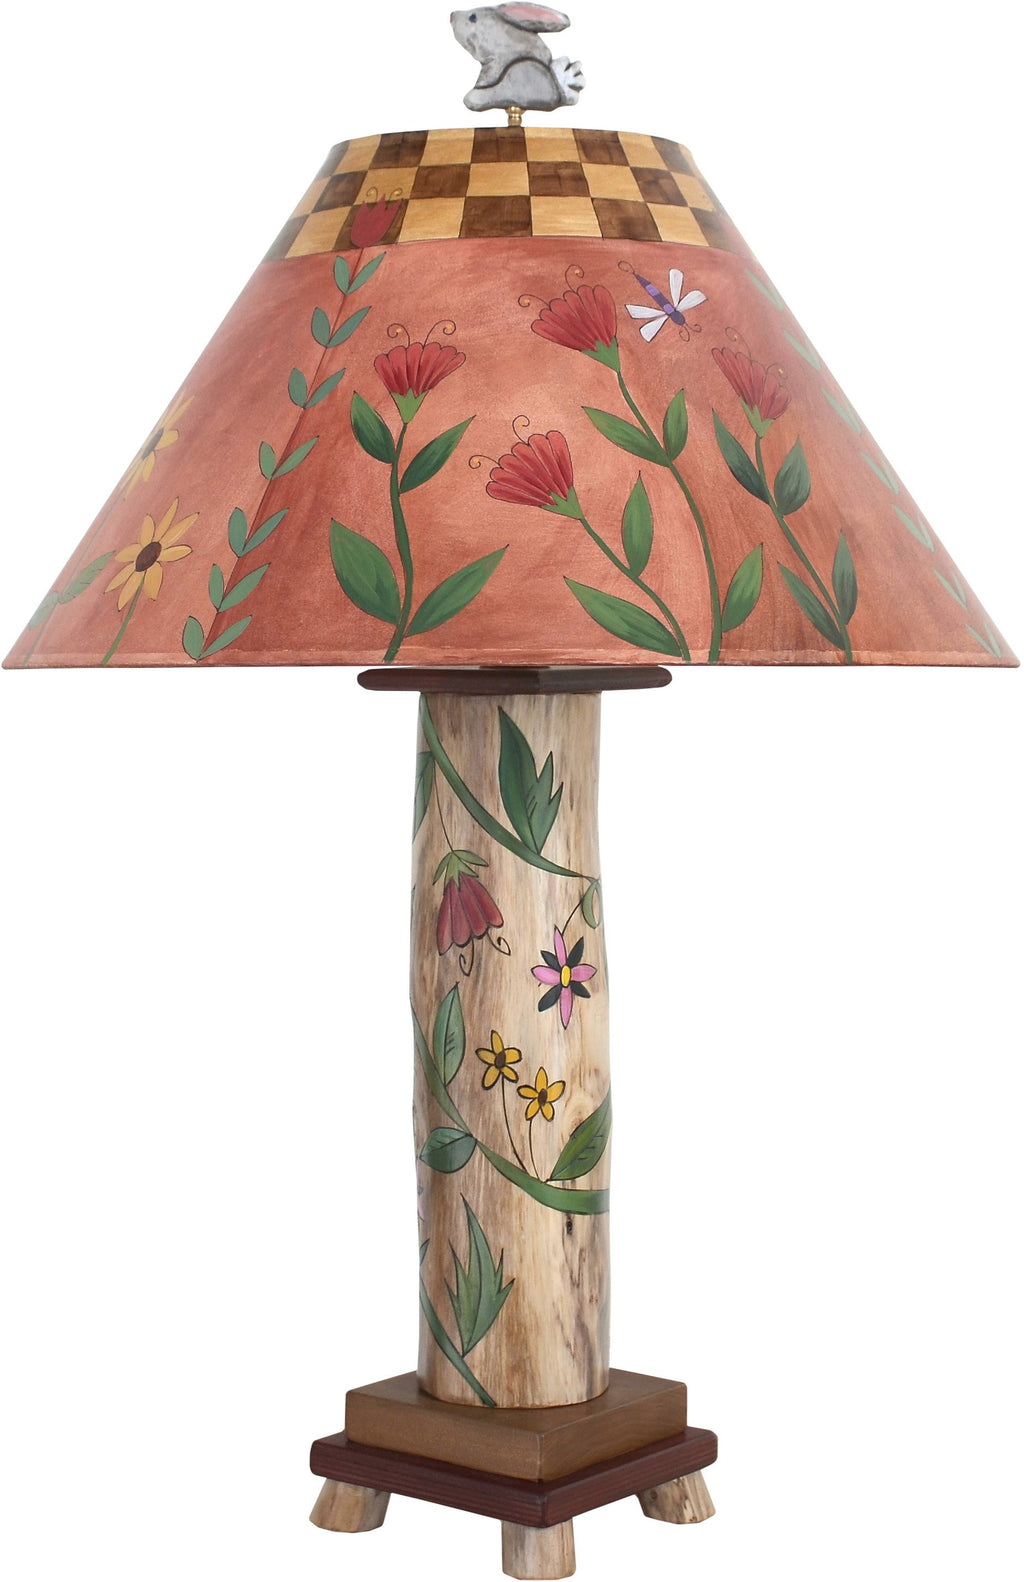 Log Table Lamp –  Pretty little table lamp with floral and vine motifs